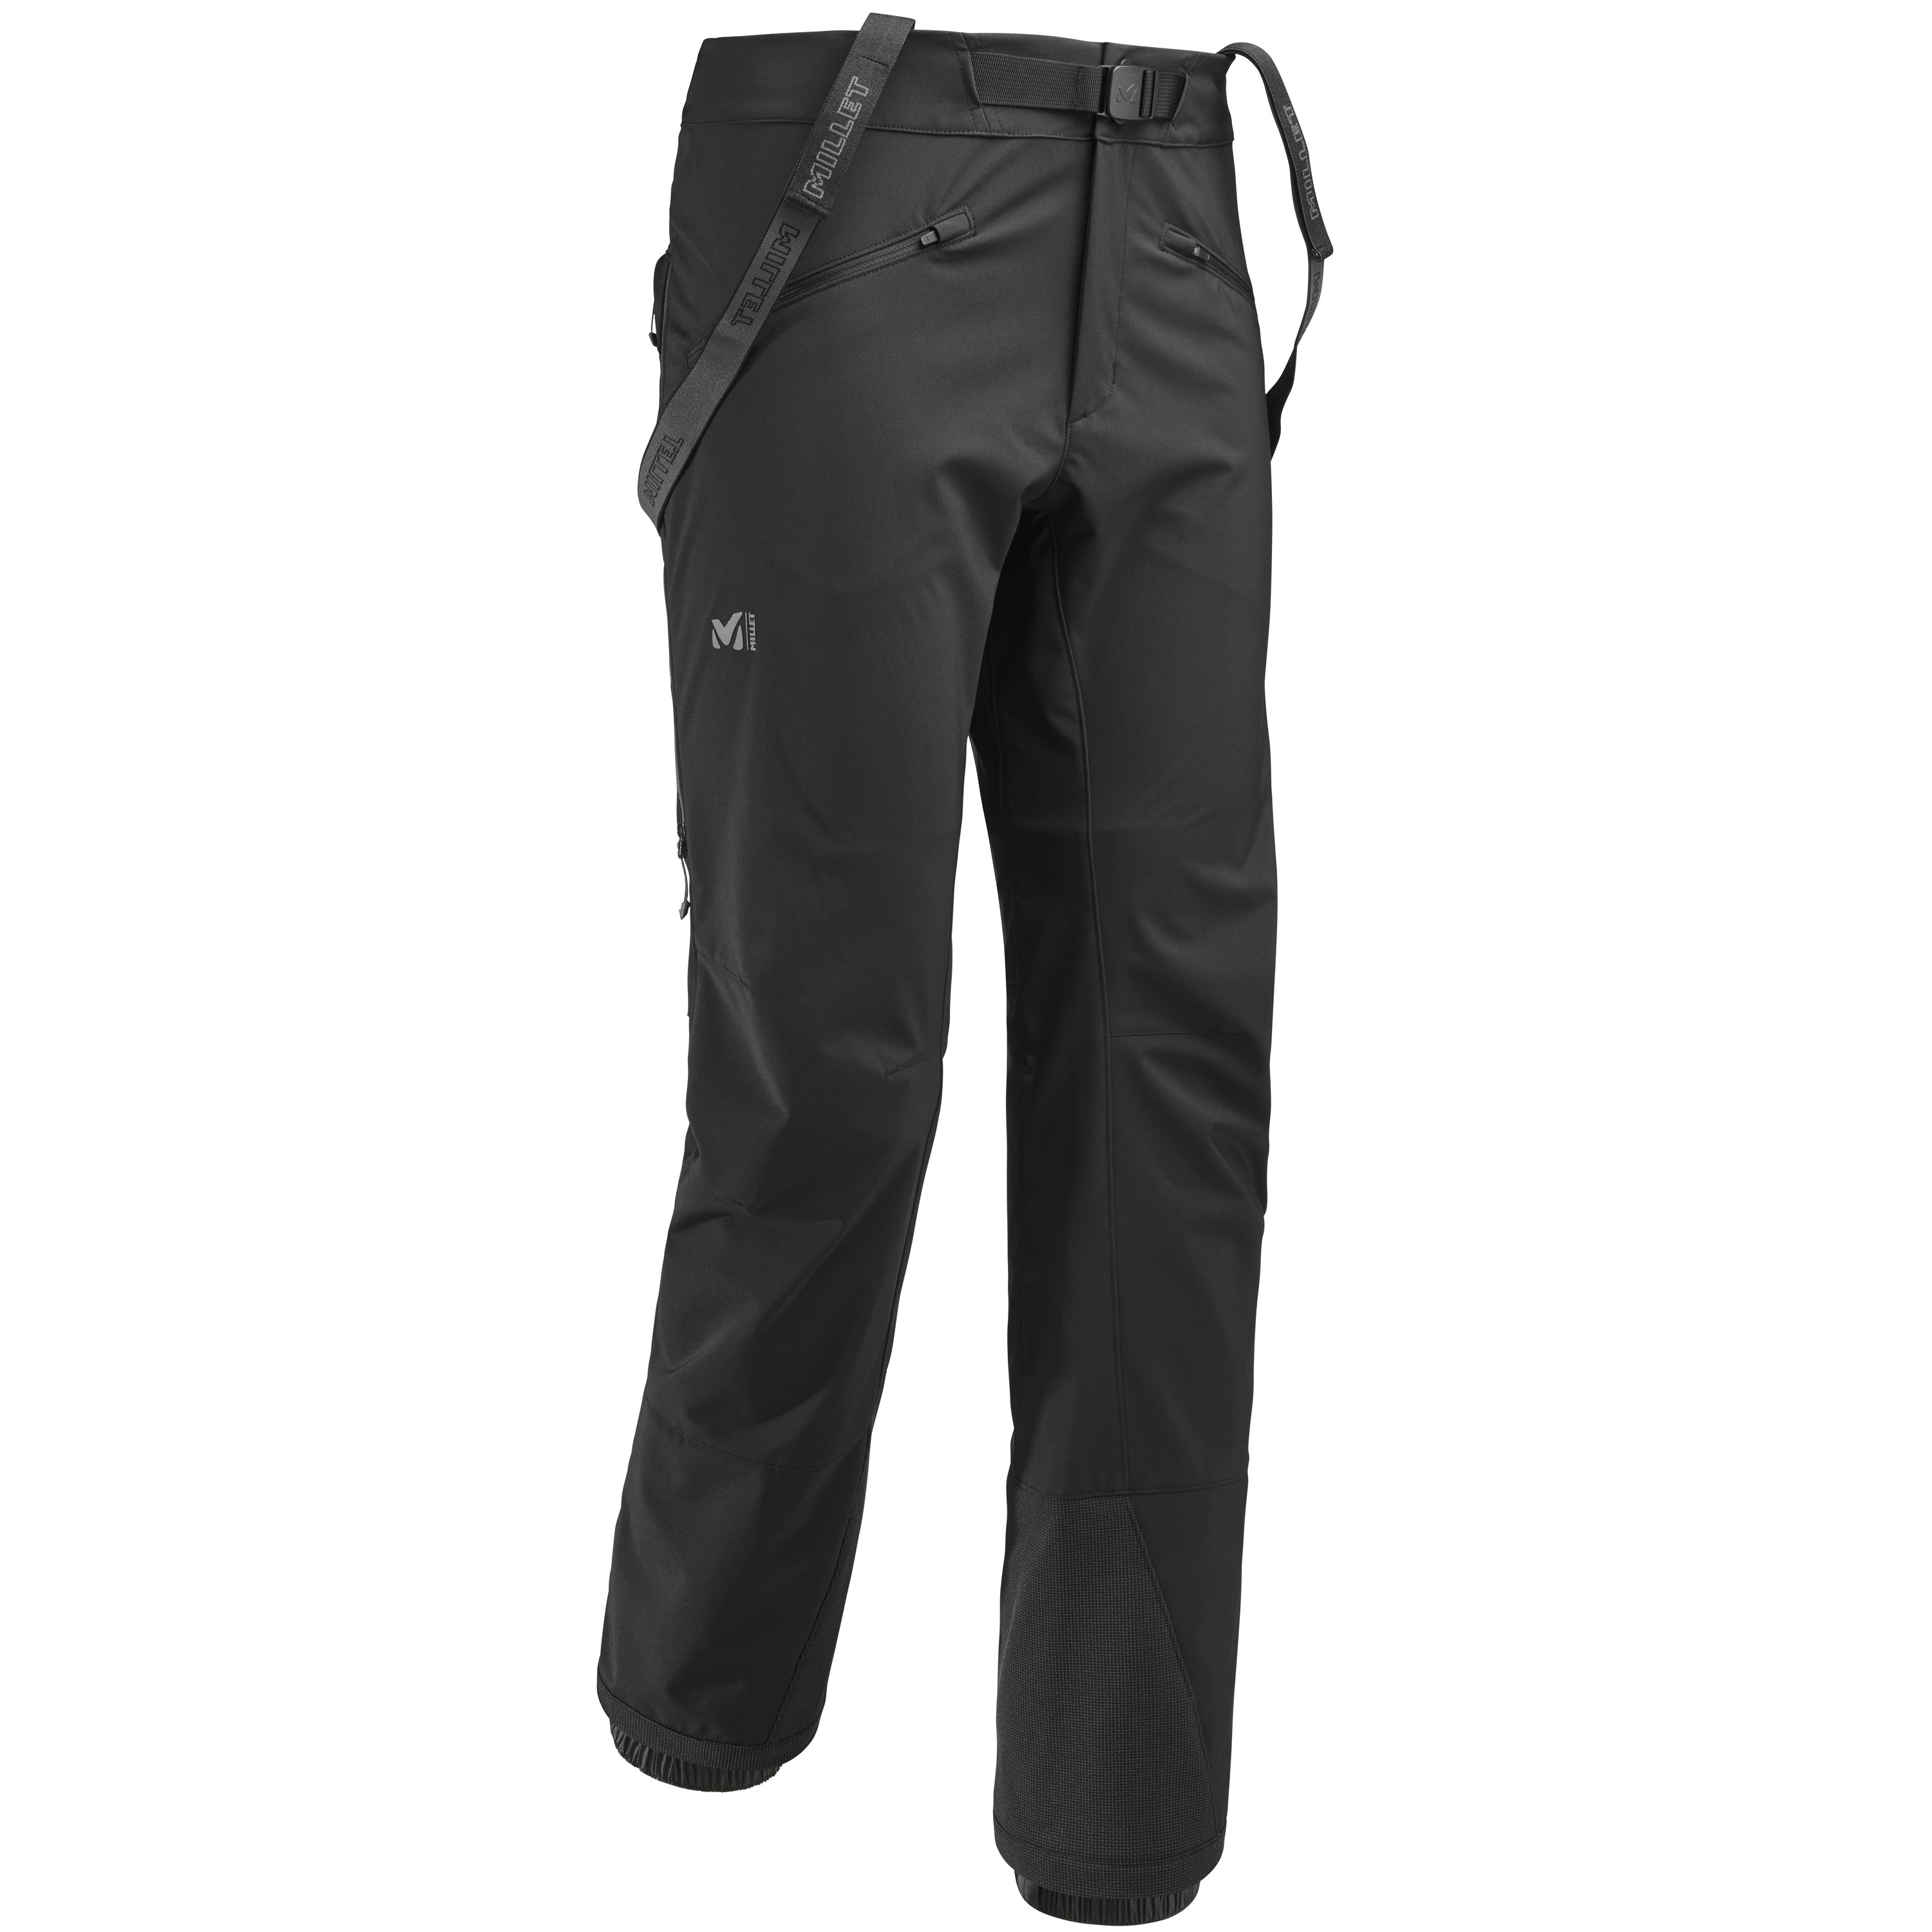 NEEDLES SHIELD PANT